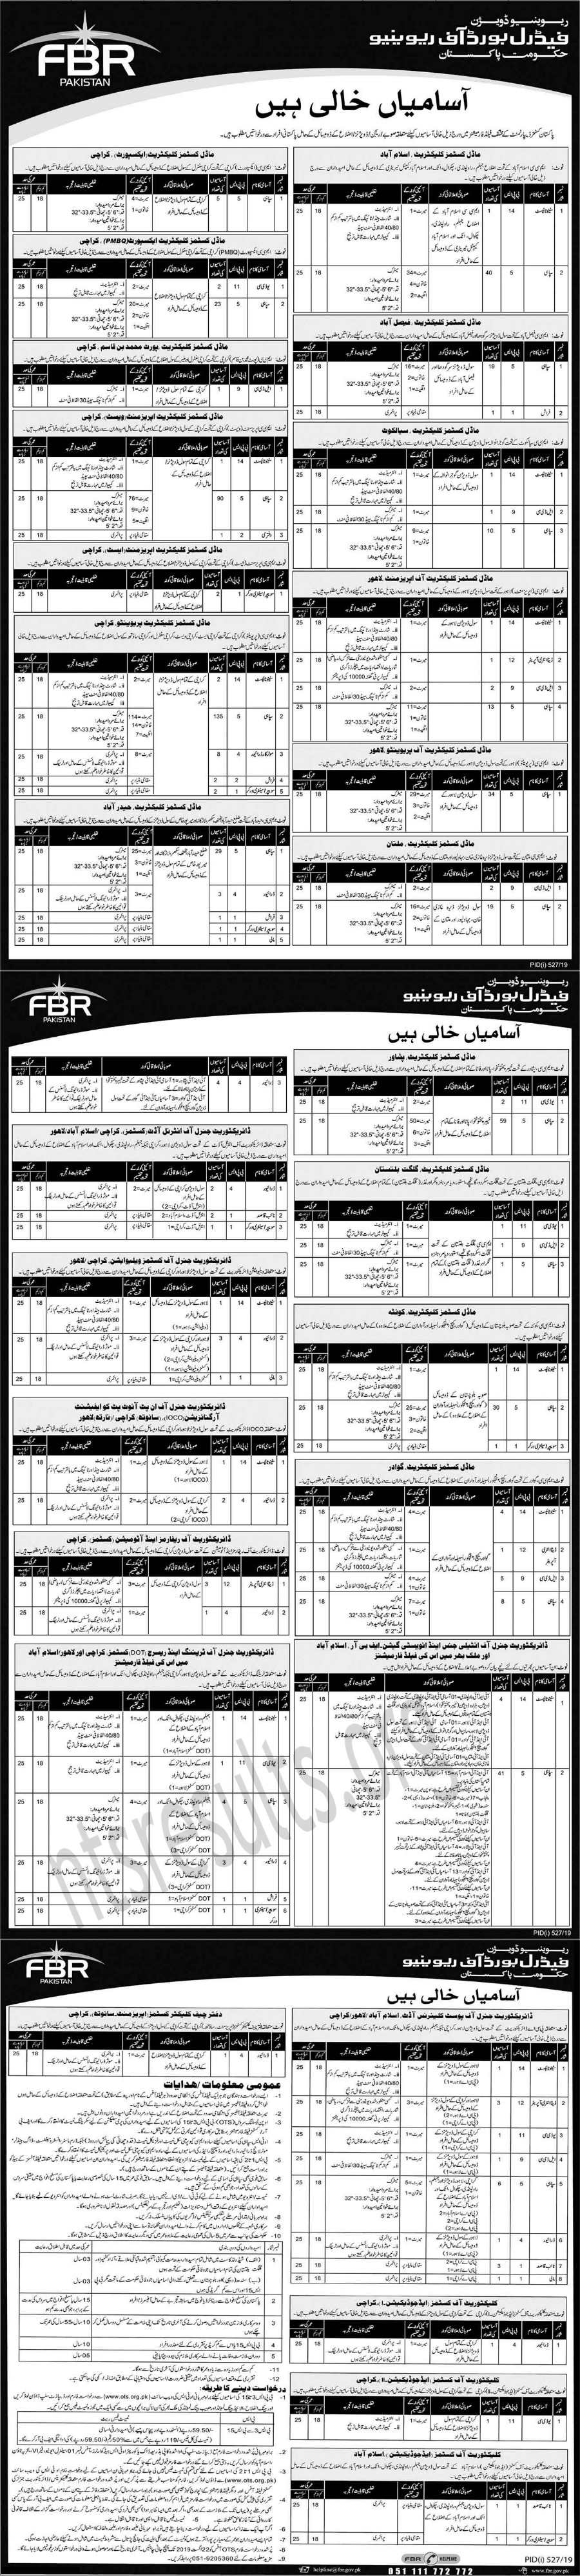 Federal Board of Revenue FBR Jobs OTS Test Roll No Slip